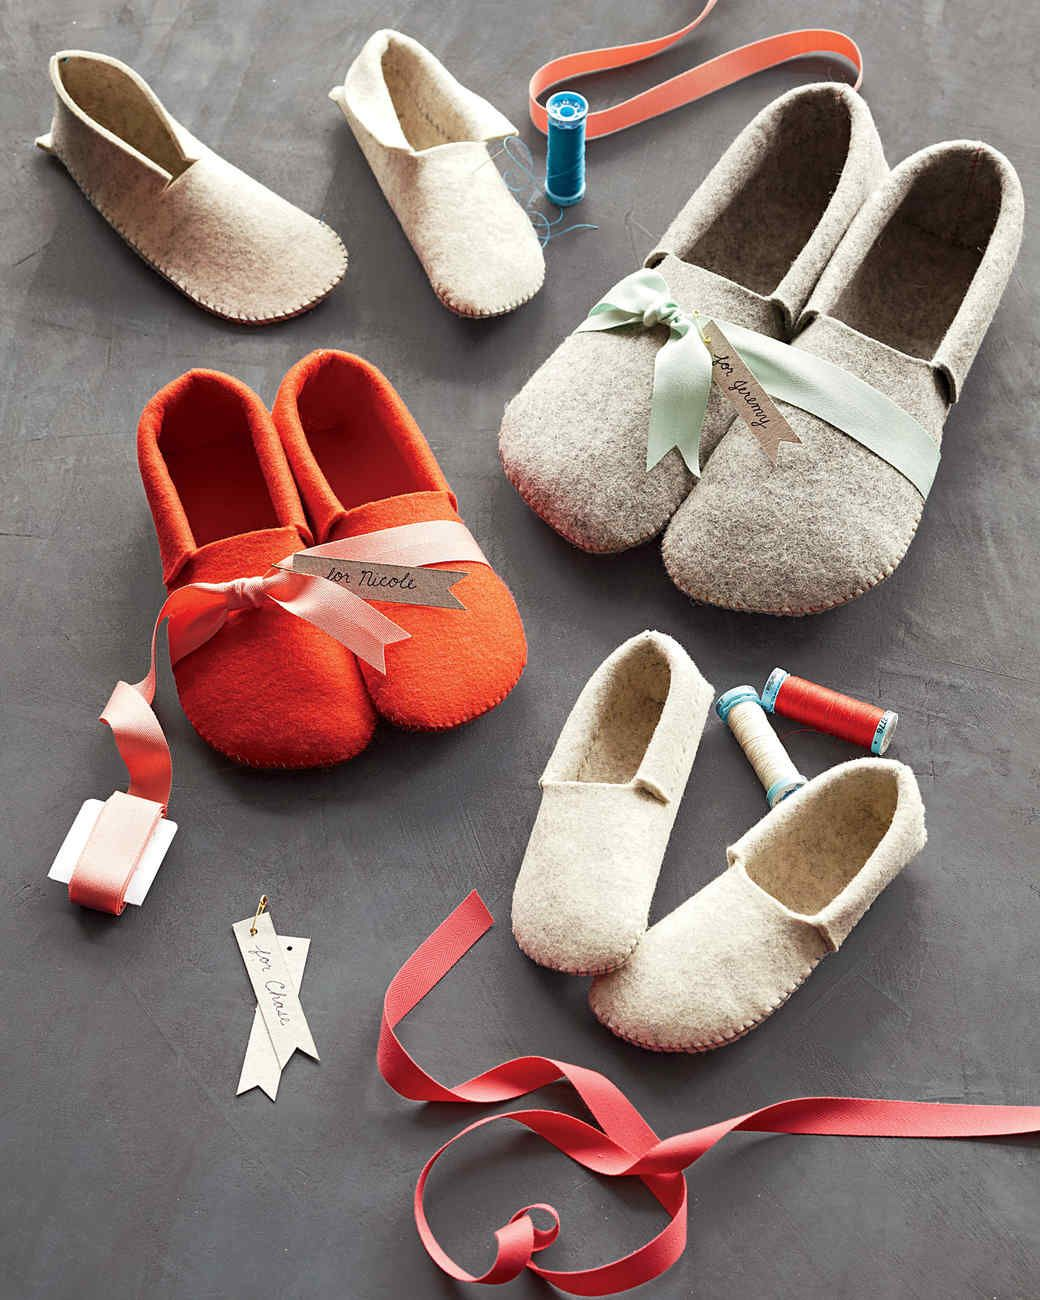 Inspired by moccasins, each of these slip-ons is constructed from a single piece of felt, available in an array of colors.